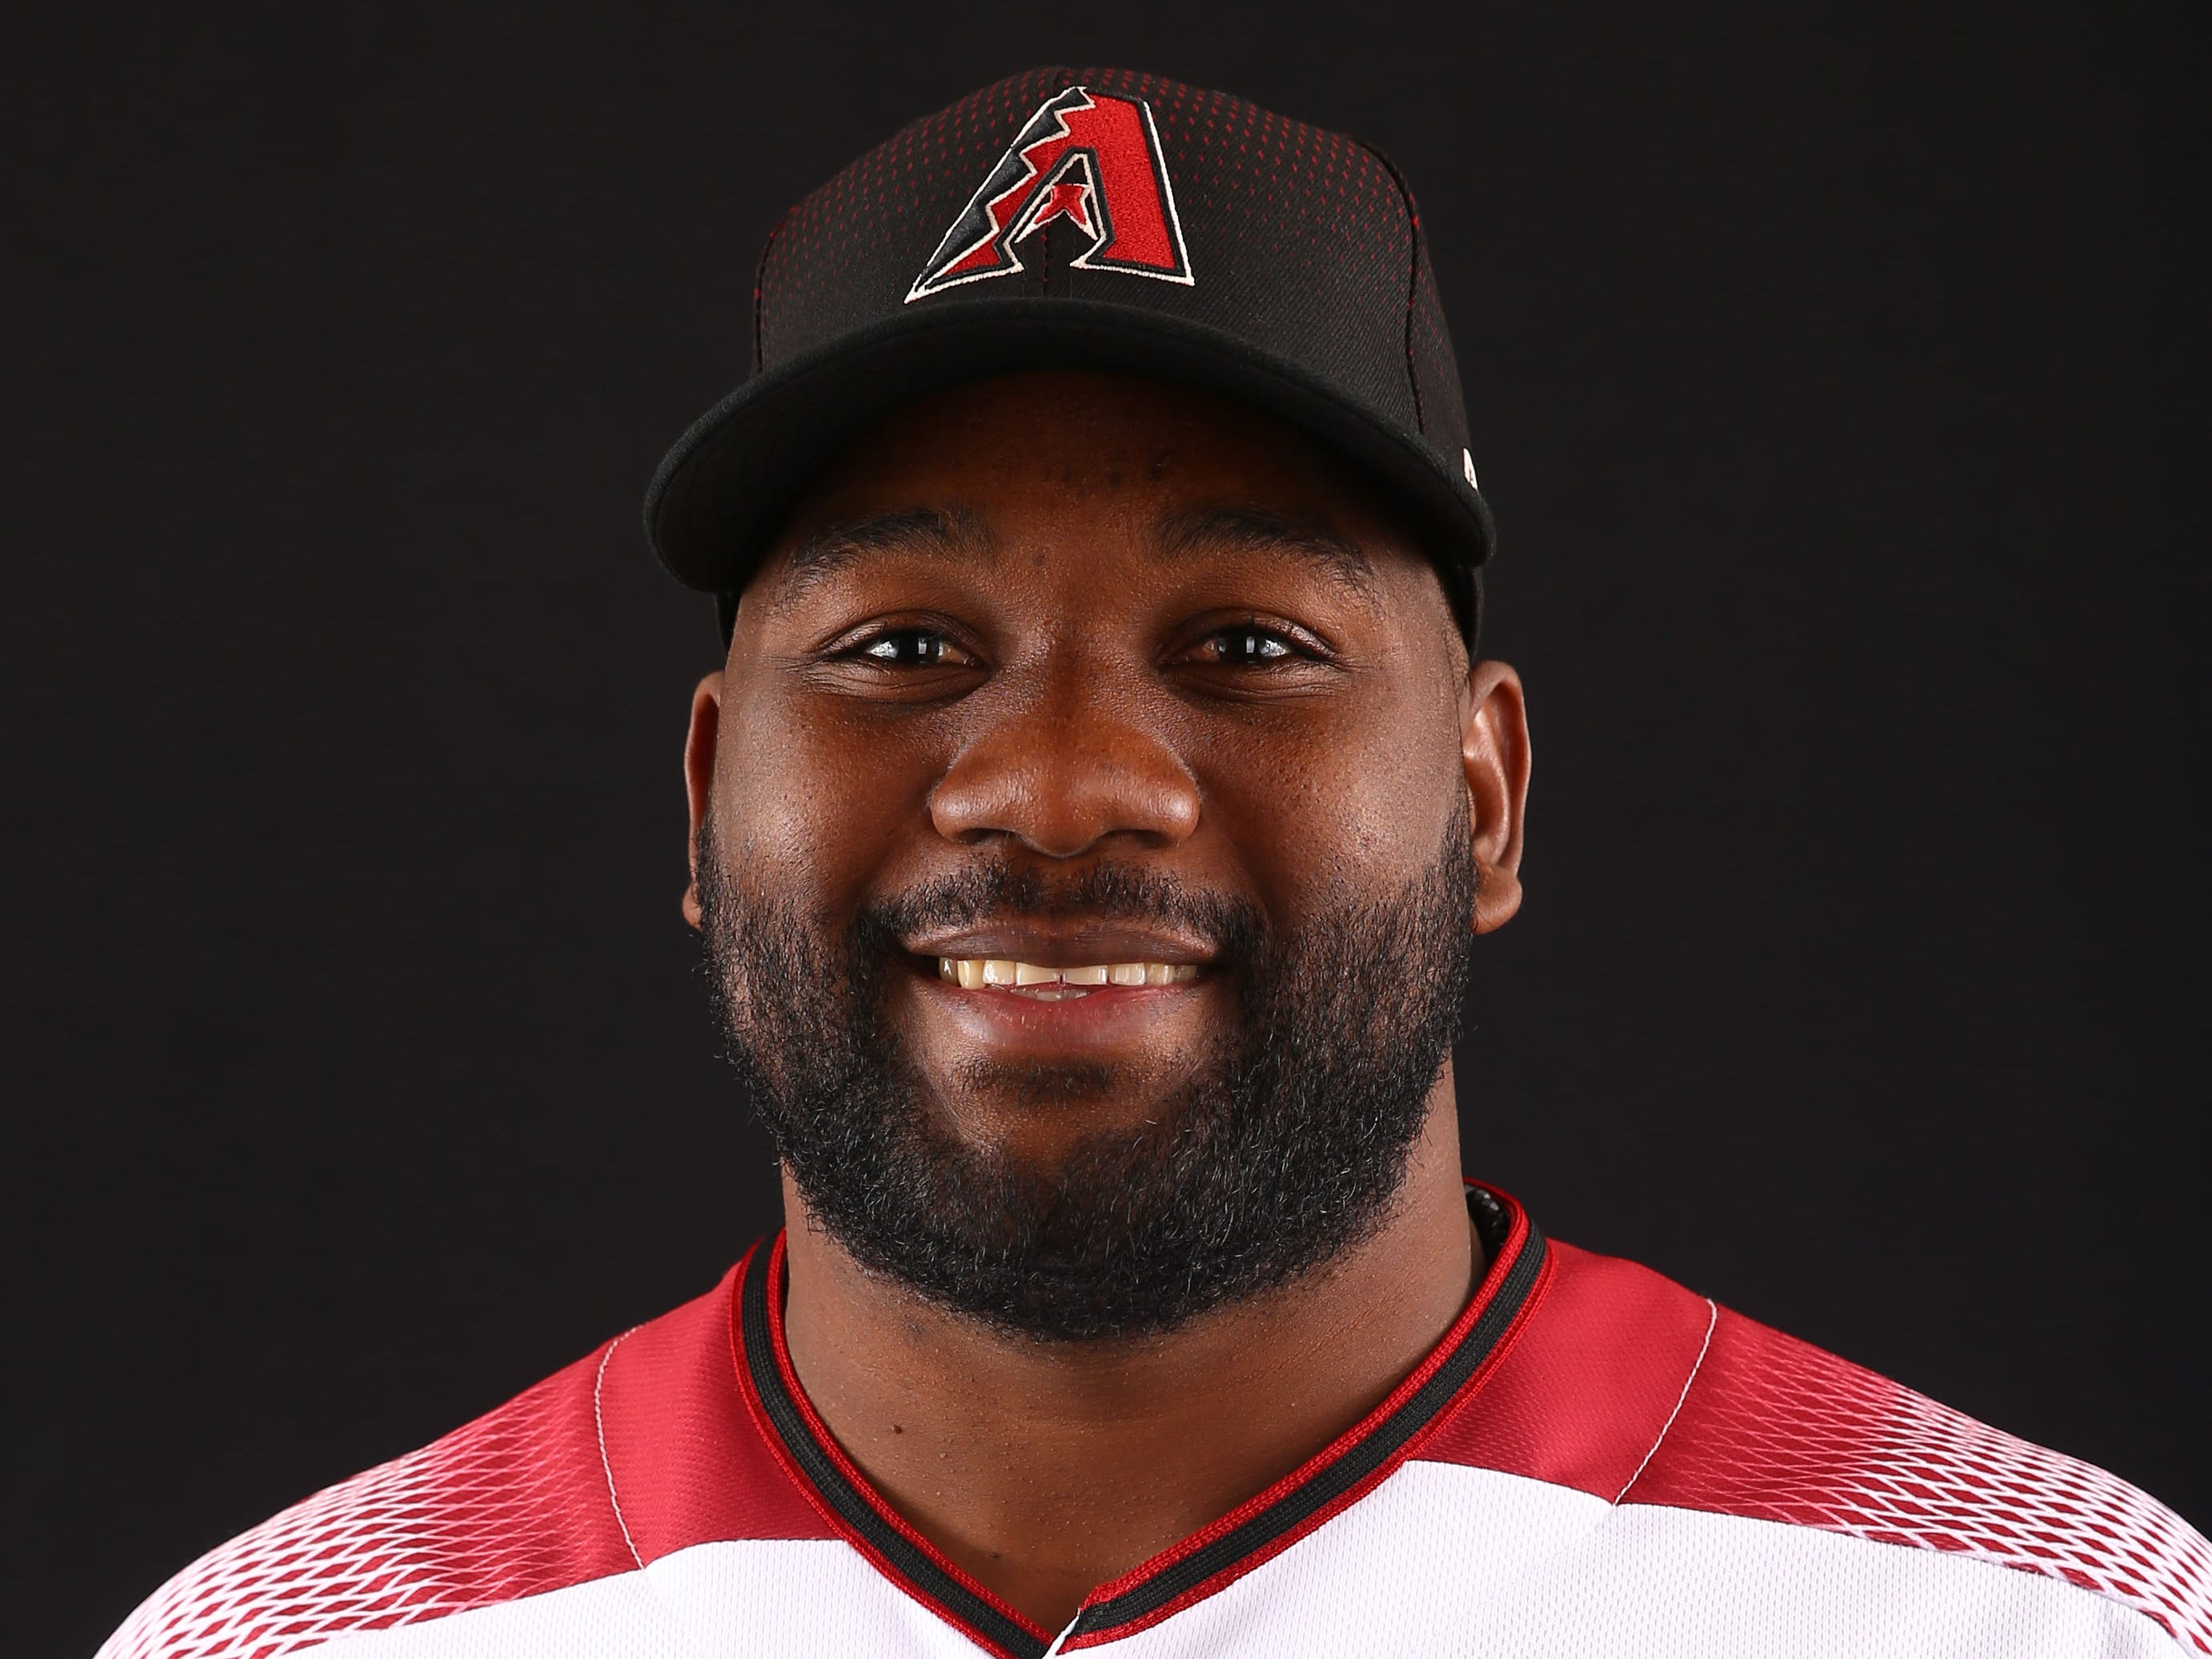 Abraham Almonte of the Arizona Diamondbacks poses for a photo during the annual Spring Training Photo Day on Feb. 20 at Salt River Fields in Scottsdale, Ariz.